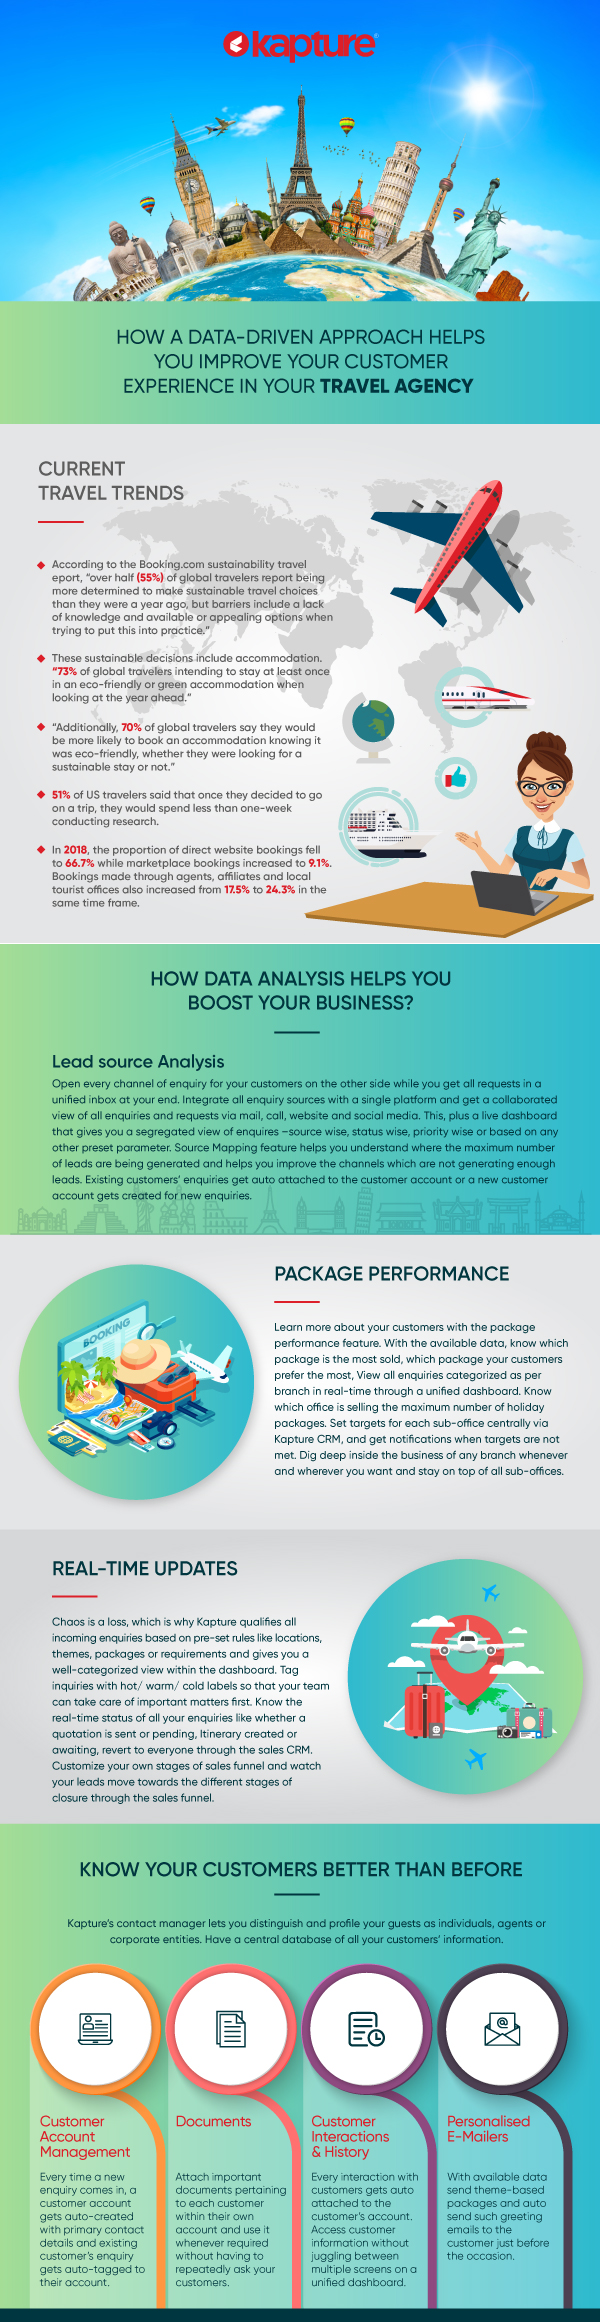 How a Data Driven Approach Helps You Improve Your Customer Experience In Your Travel Agency